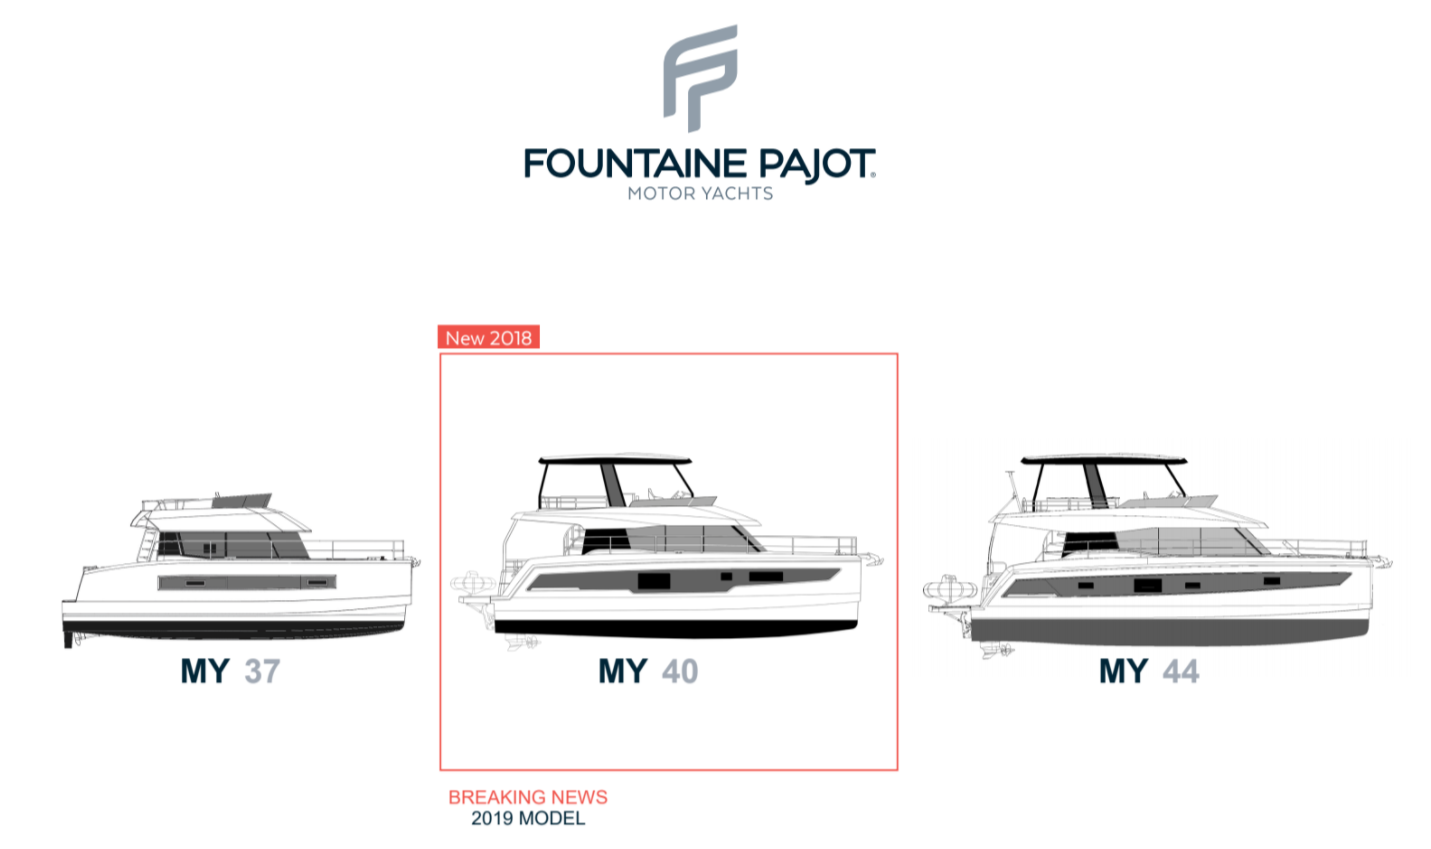 Motor Yachts - Fountaine Pajot range now includes a MY 40